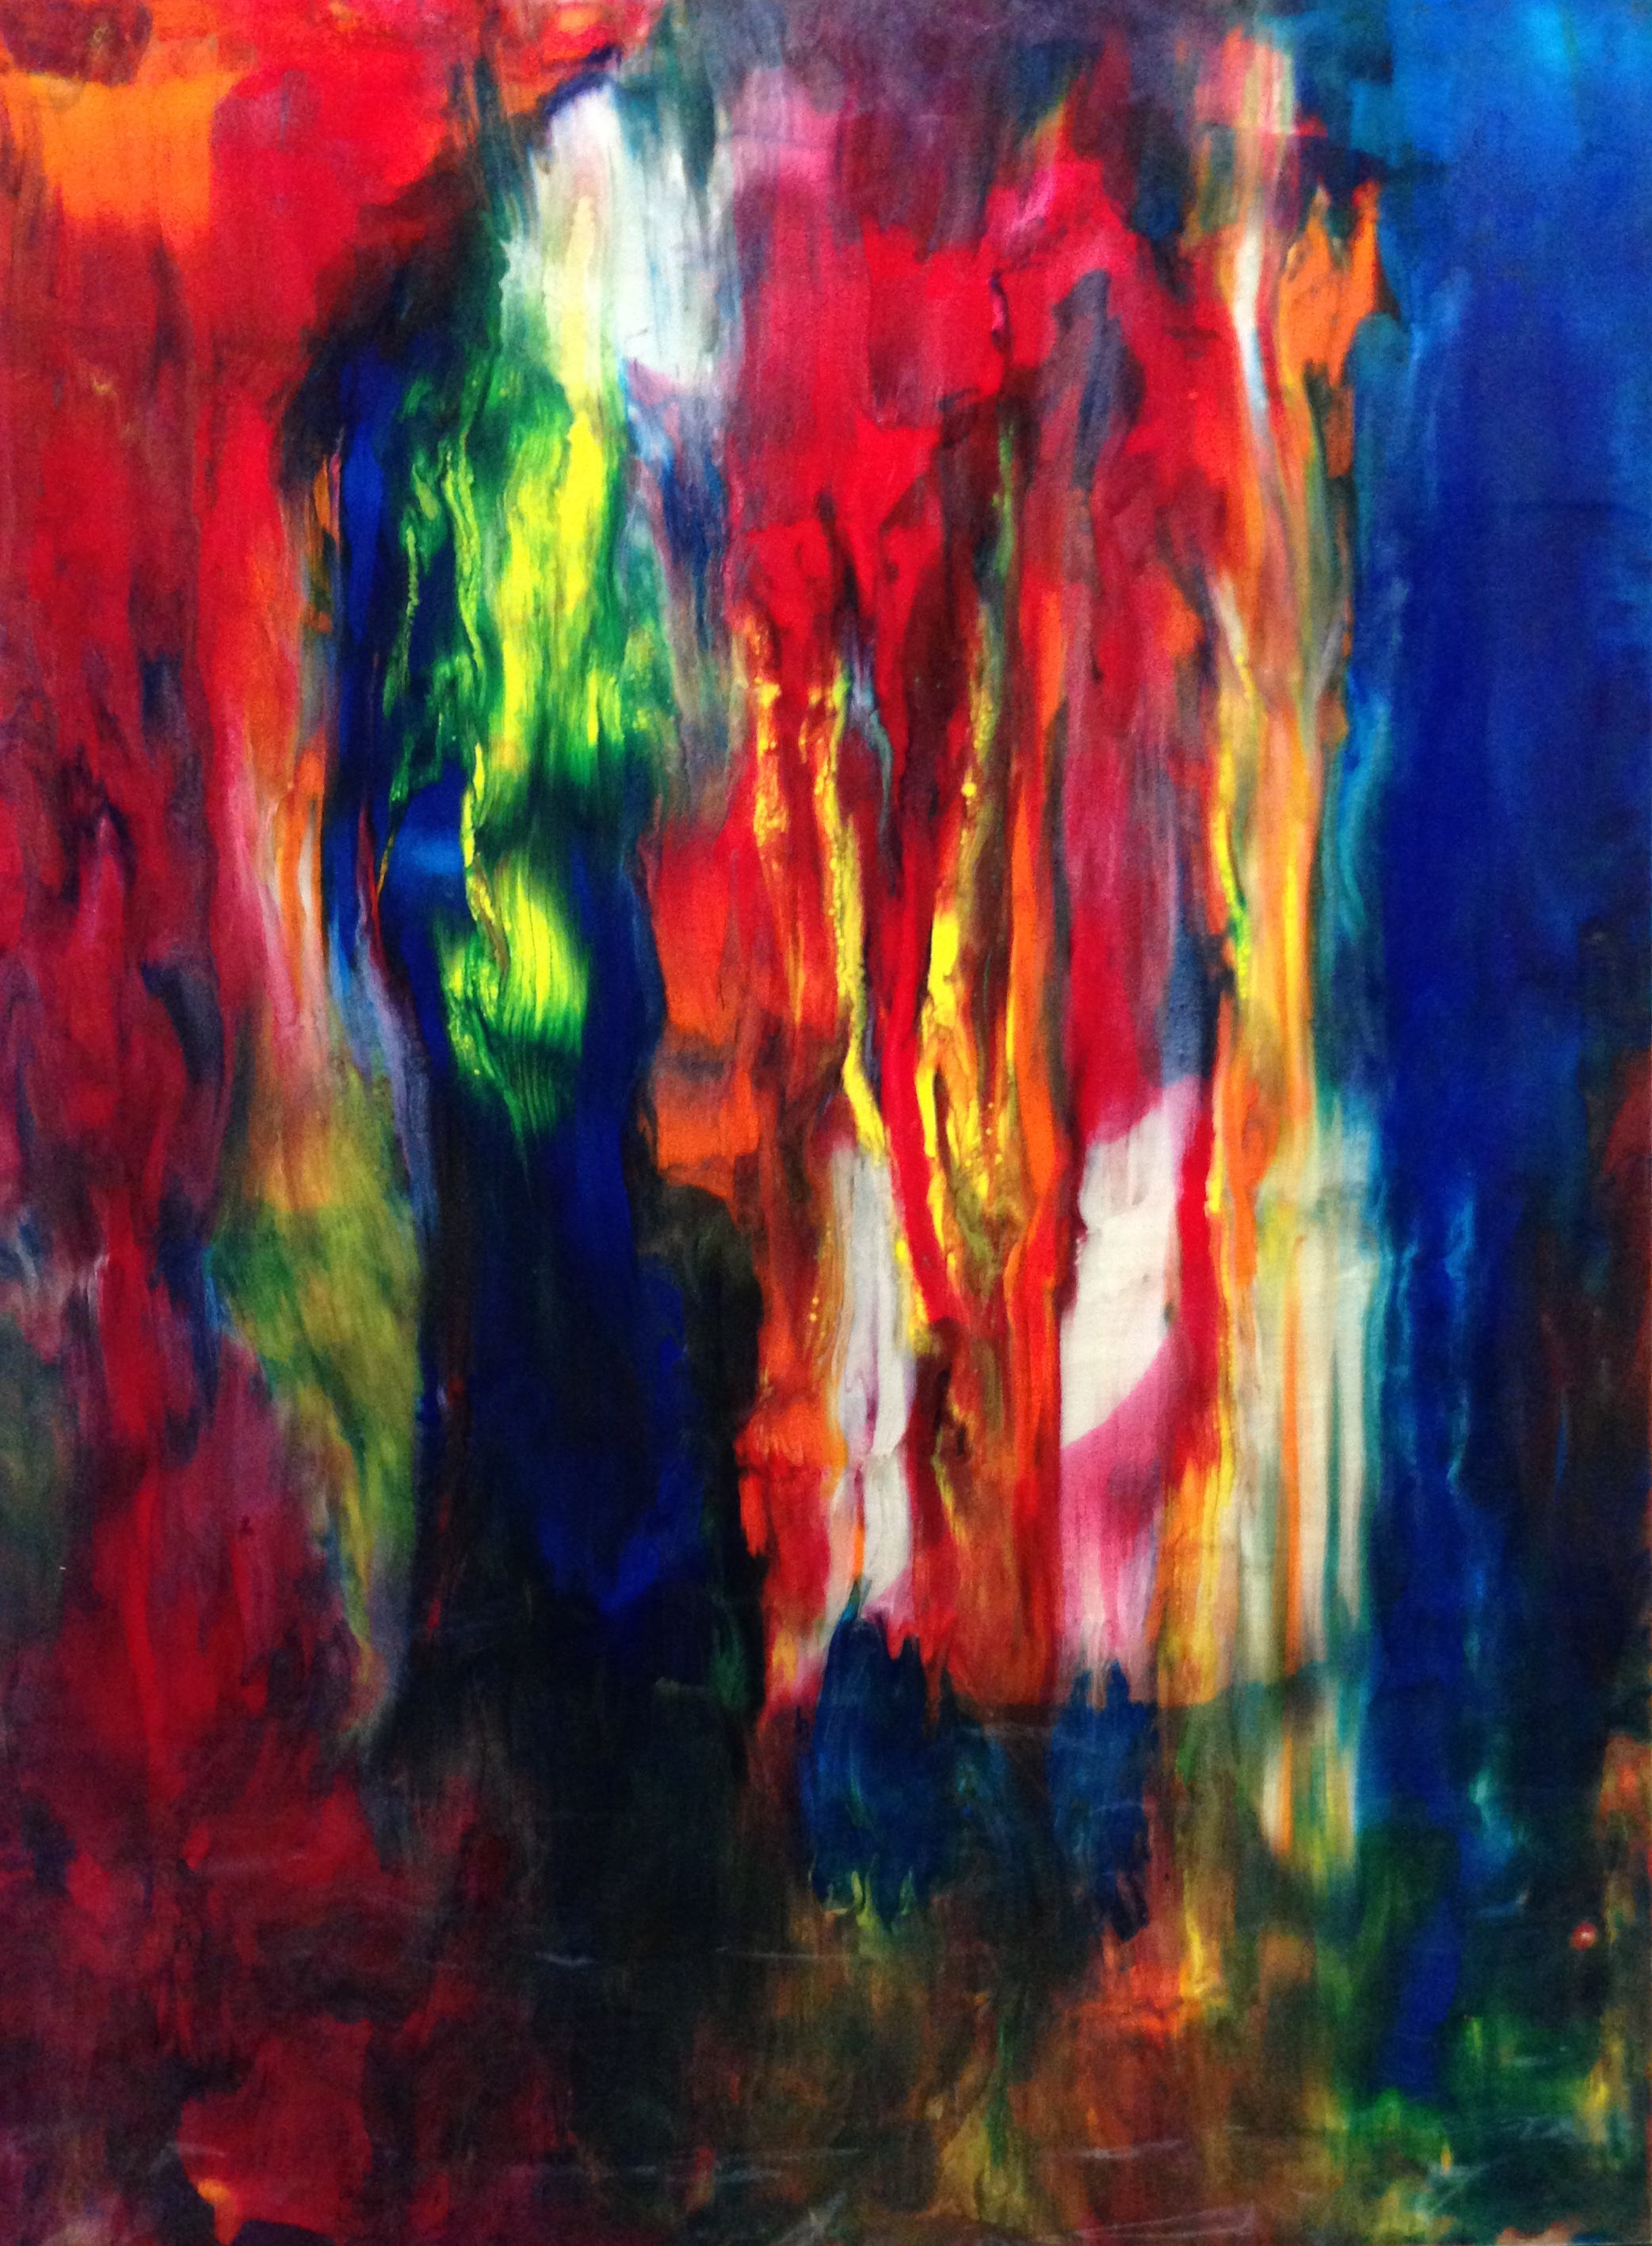 Forgiveness artwork by Heather Buechler - art listed for sale on Artplode